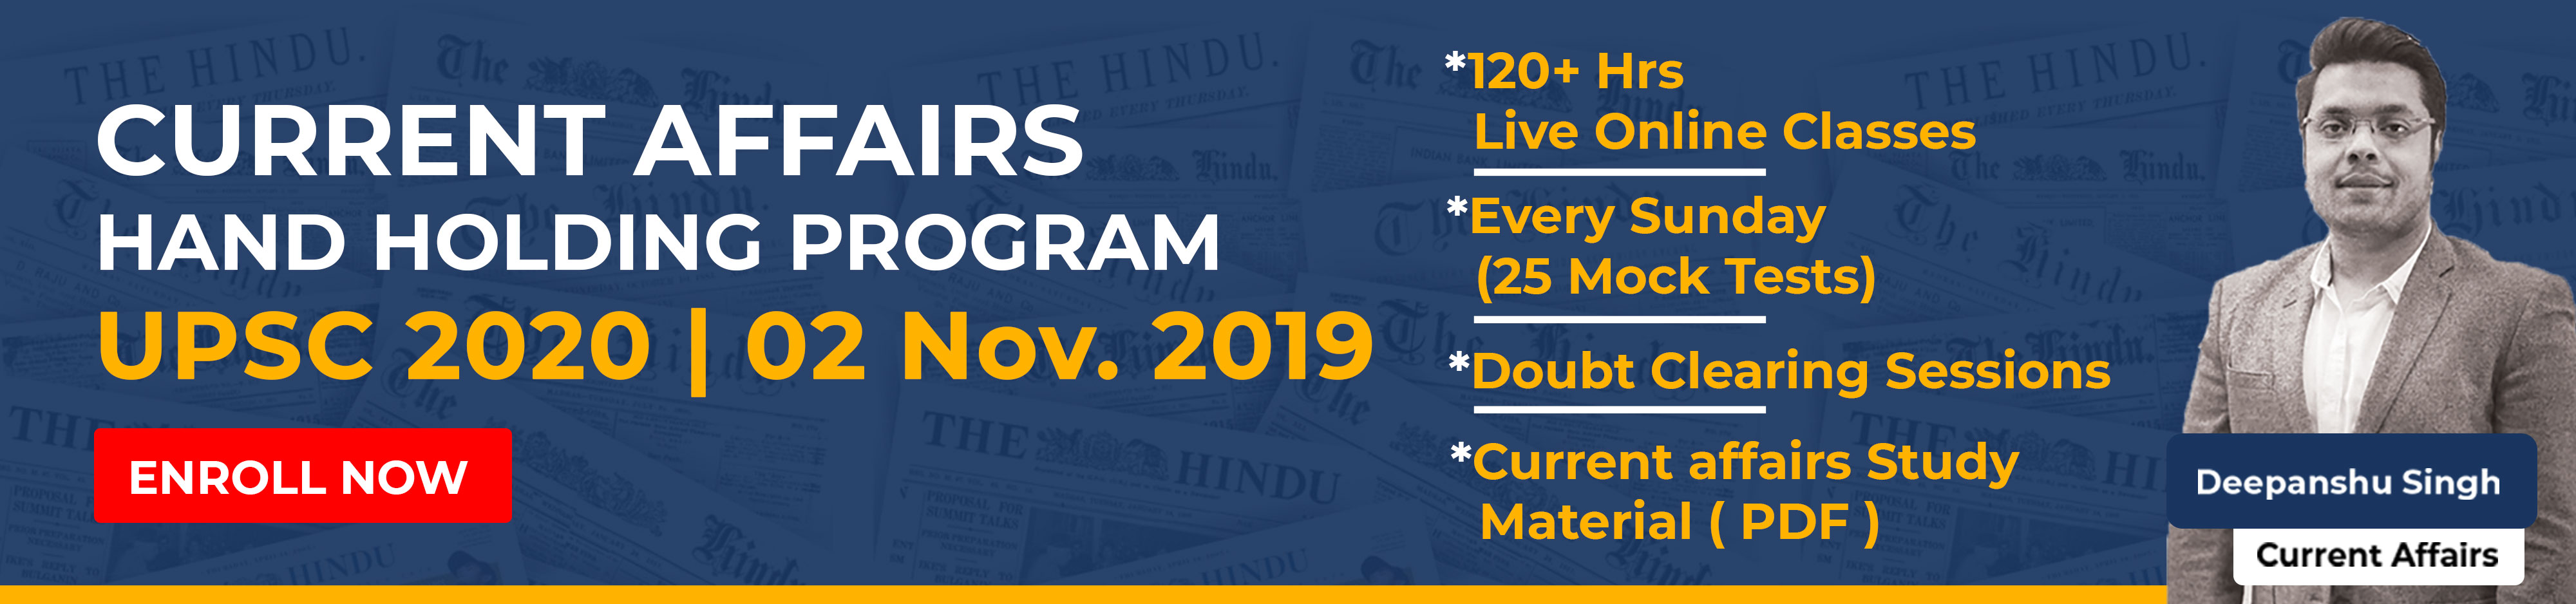 Current Affairs Hand Holding Program For UPSC 2020 banner